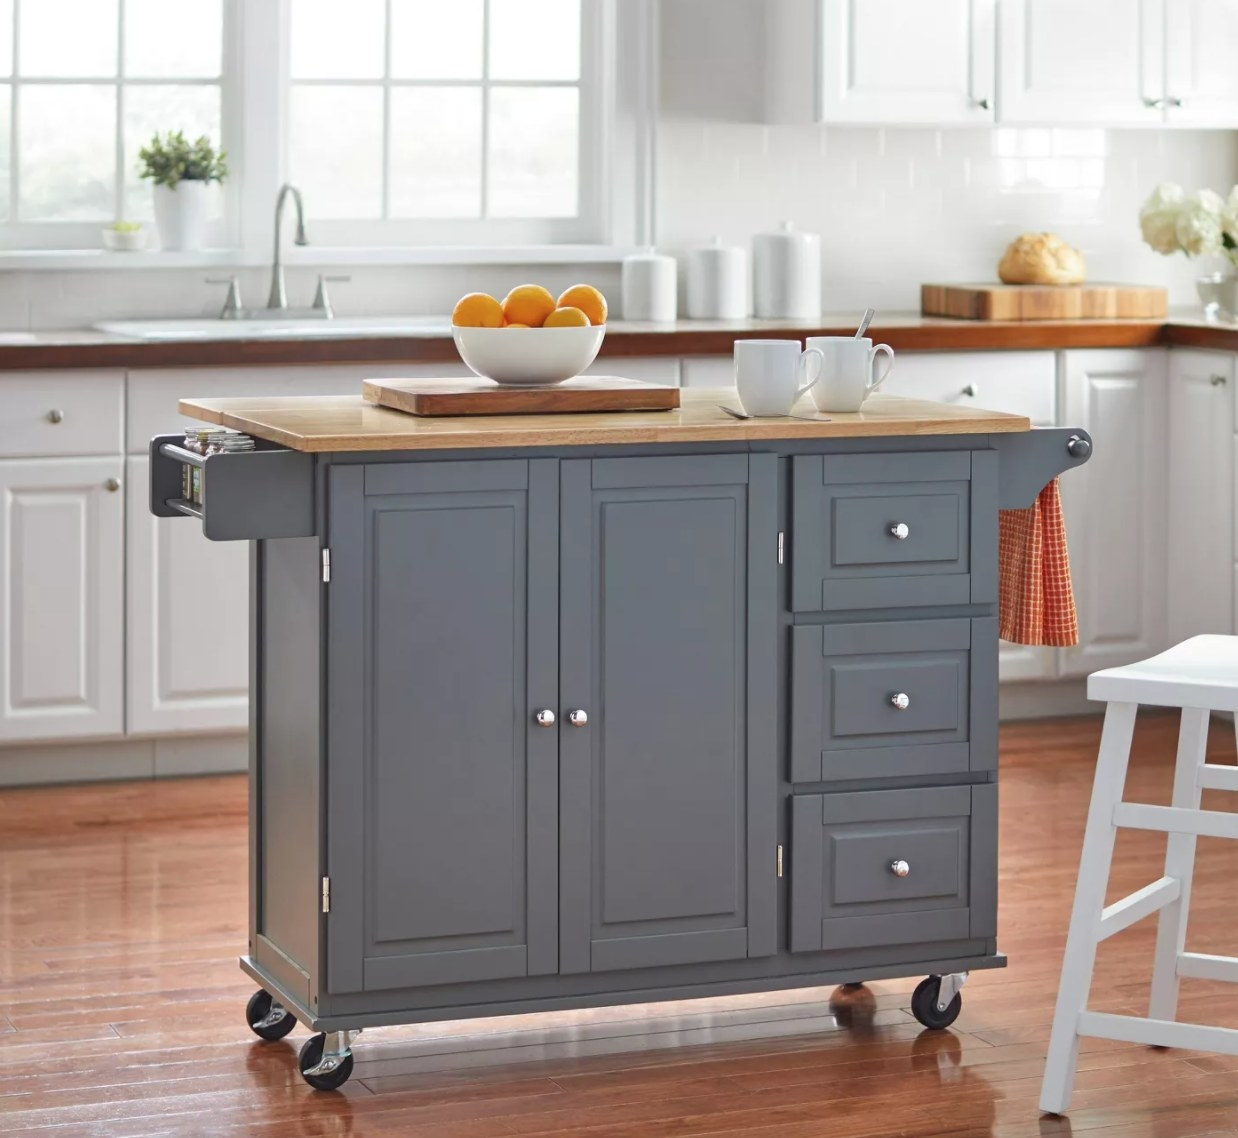 A gray kitchen island cart with wooden top and storage cabinets and drawers